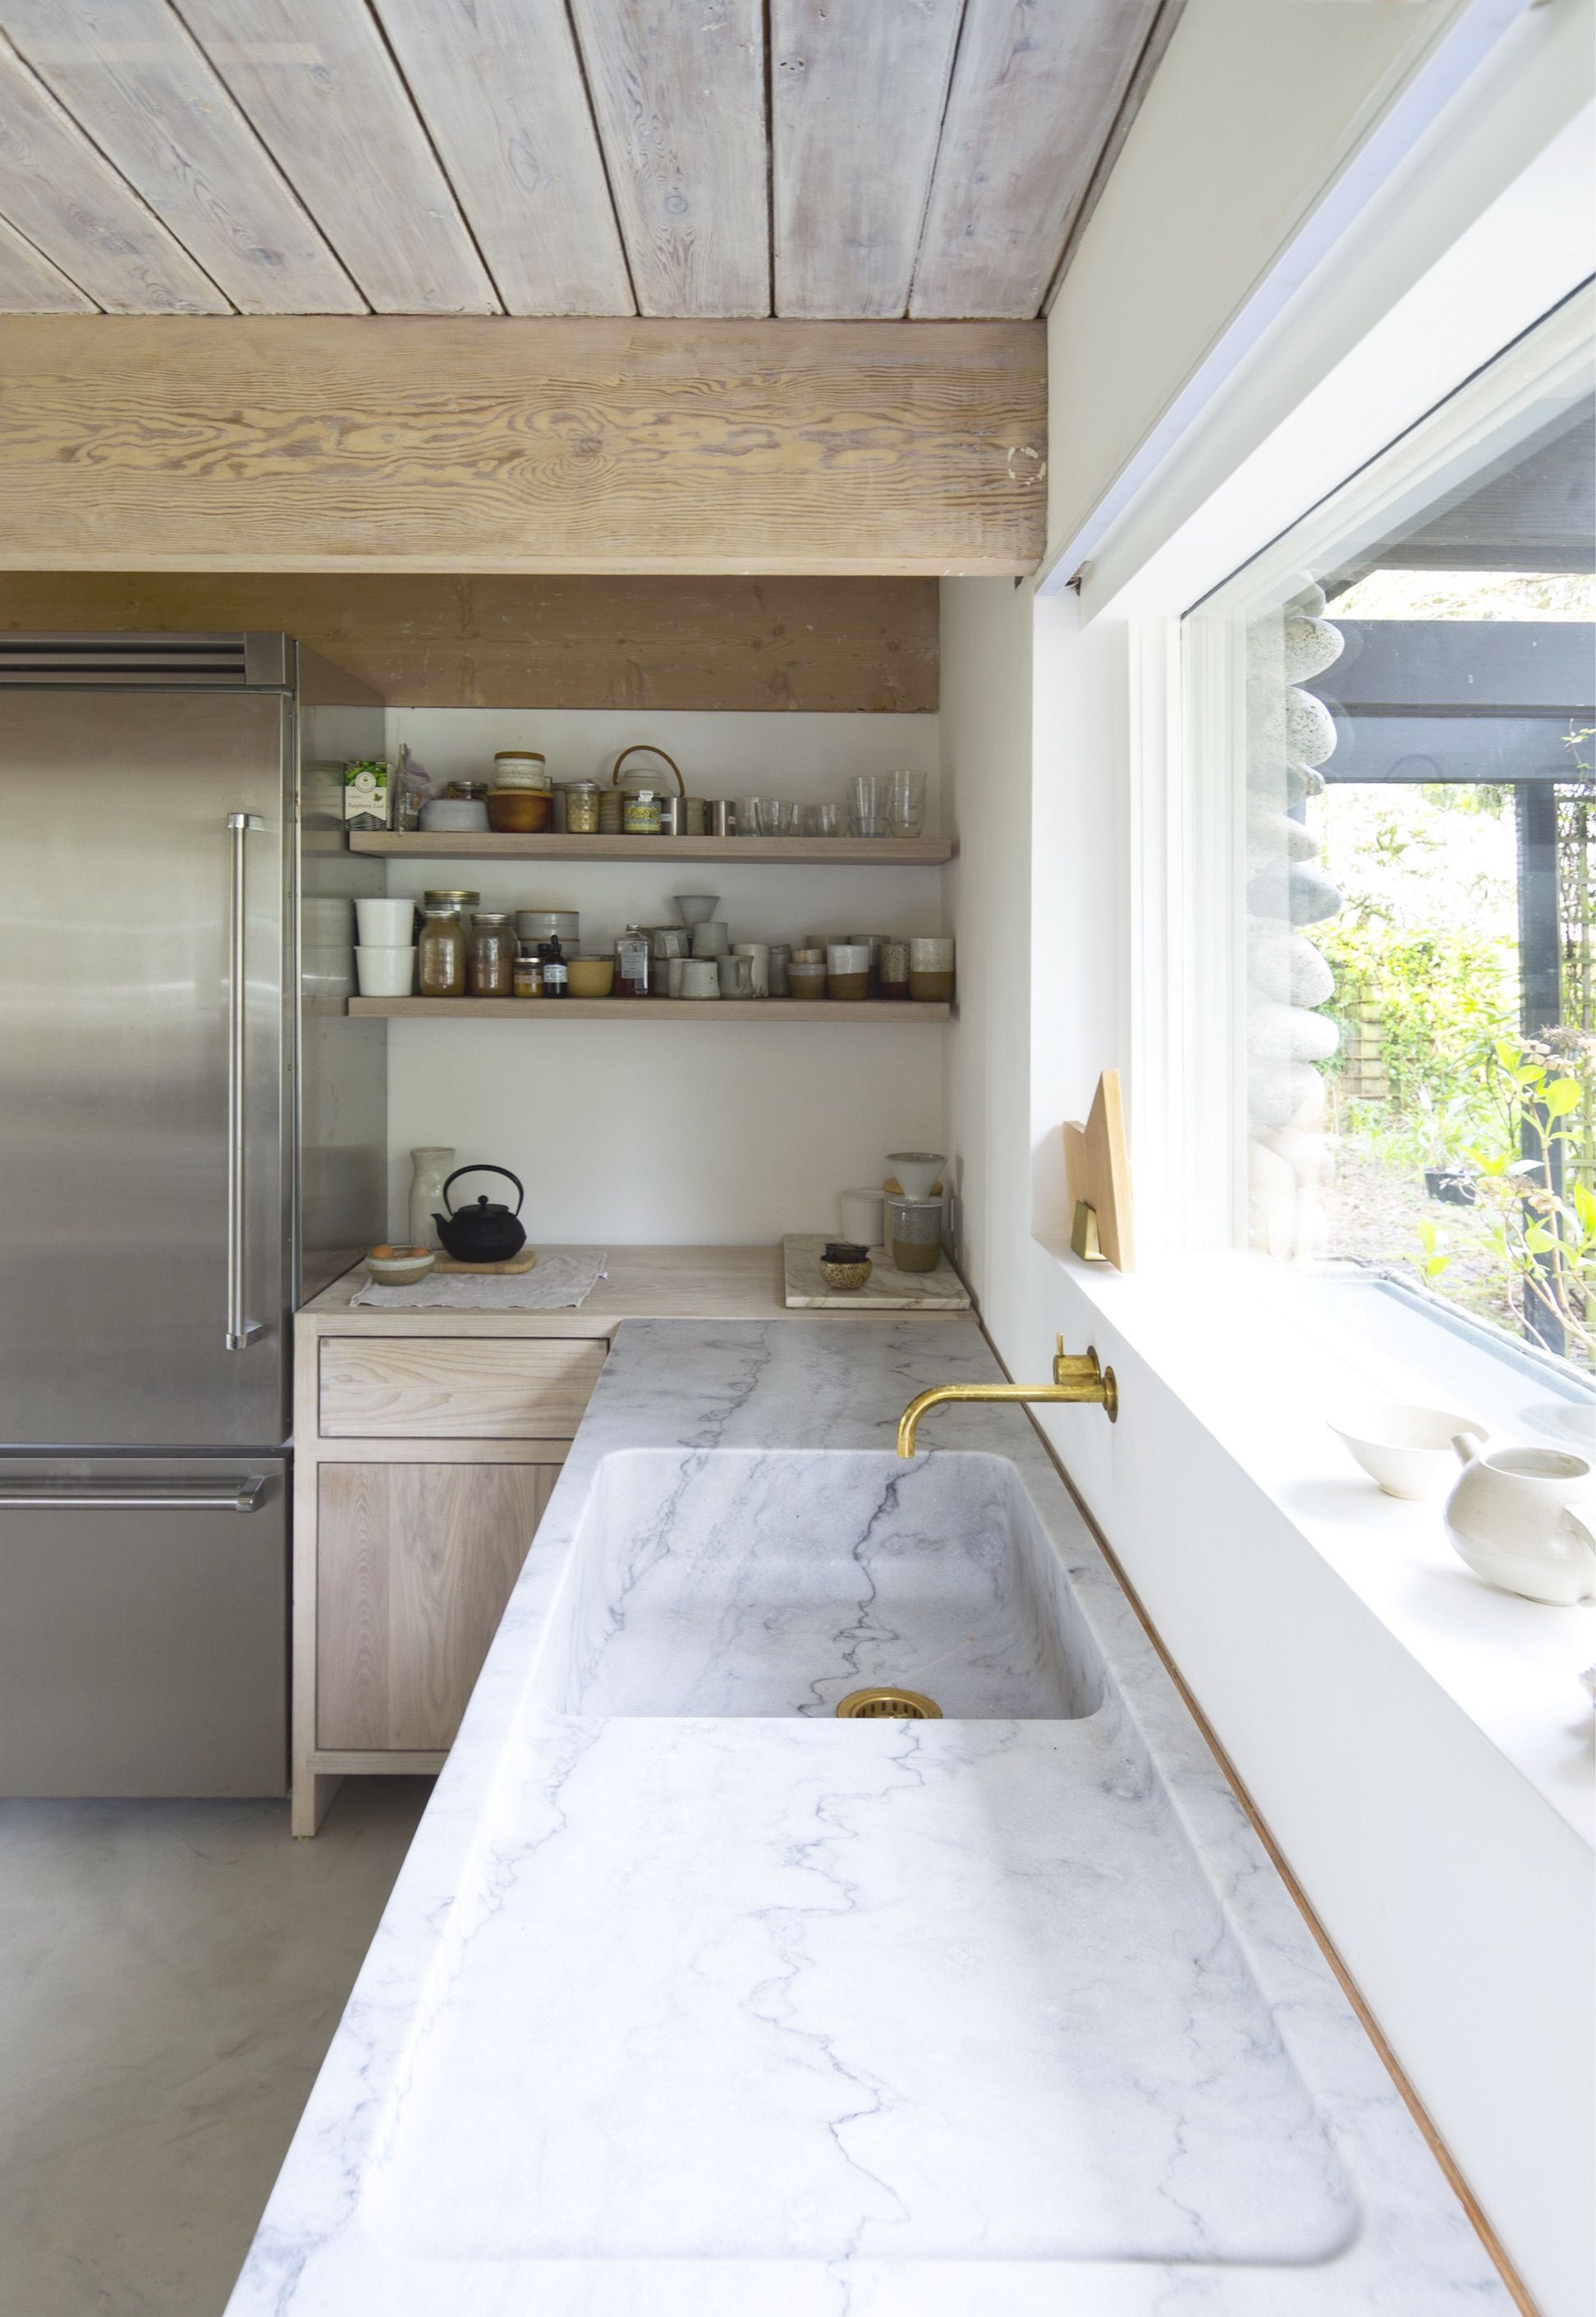 Scott and scott architects kitchen remodel with marble sink counter remodelista brynneparry stone